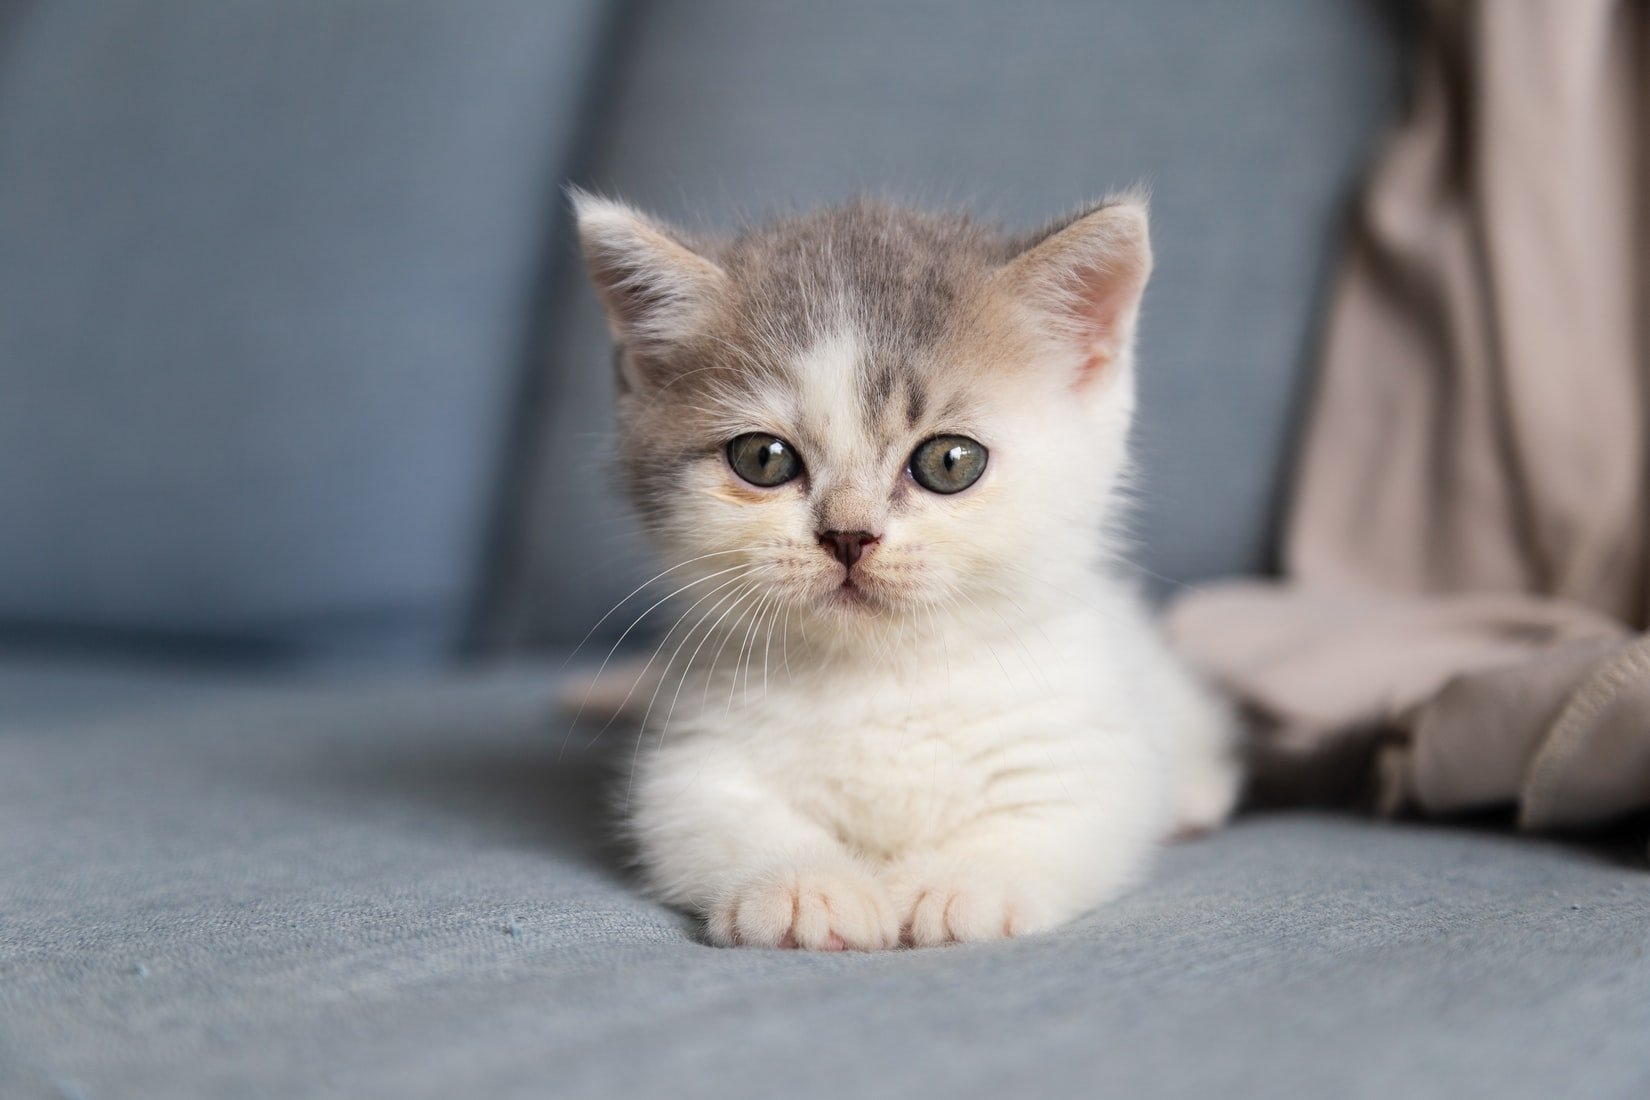 Should I remove a dead kitten from the litter